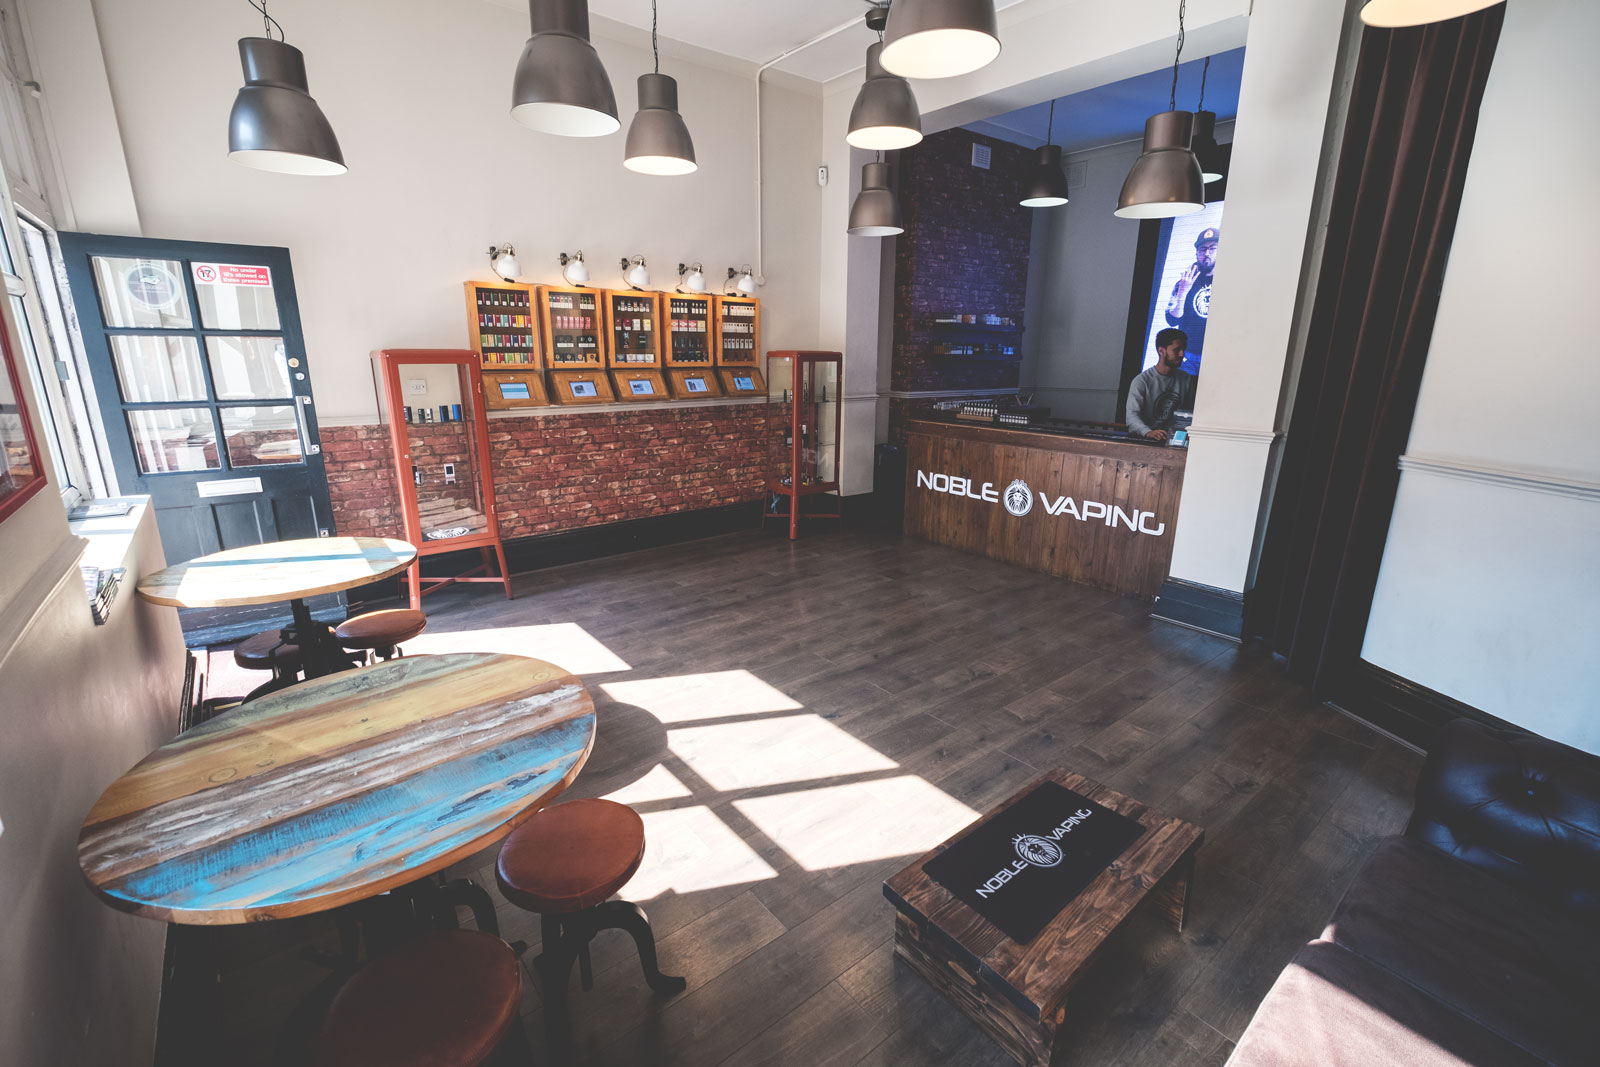 The Noble Vaping Store Shoreditch